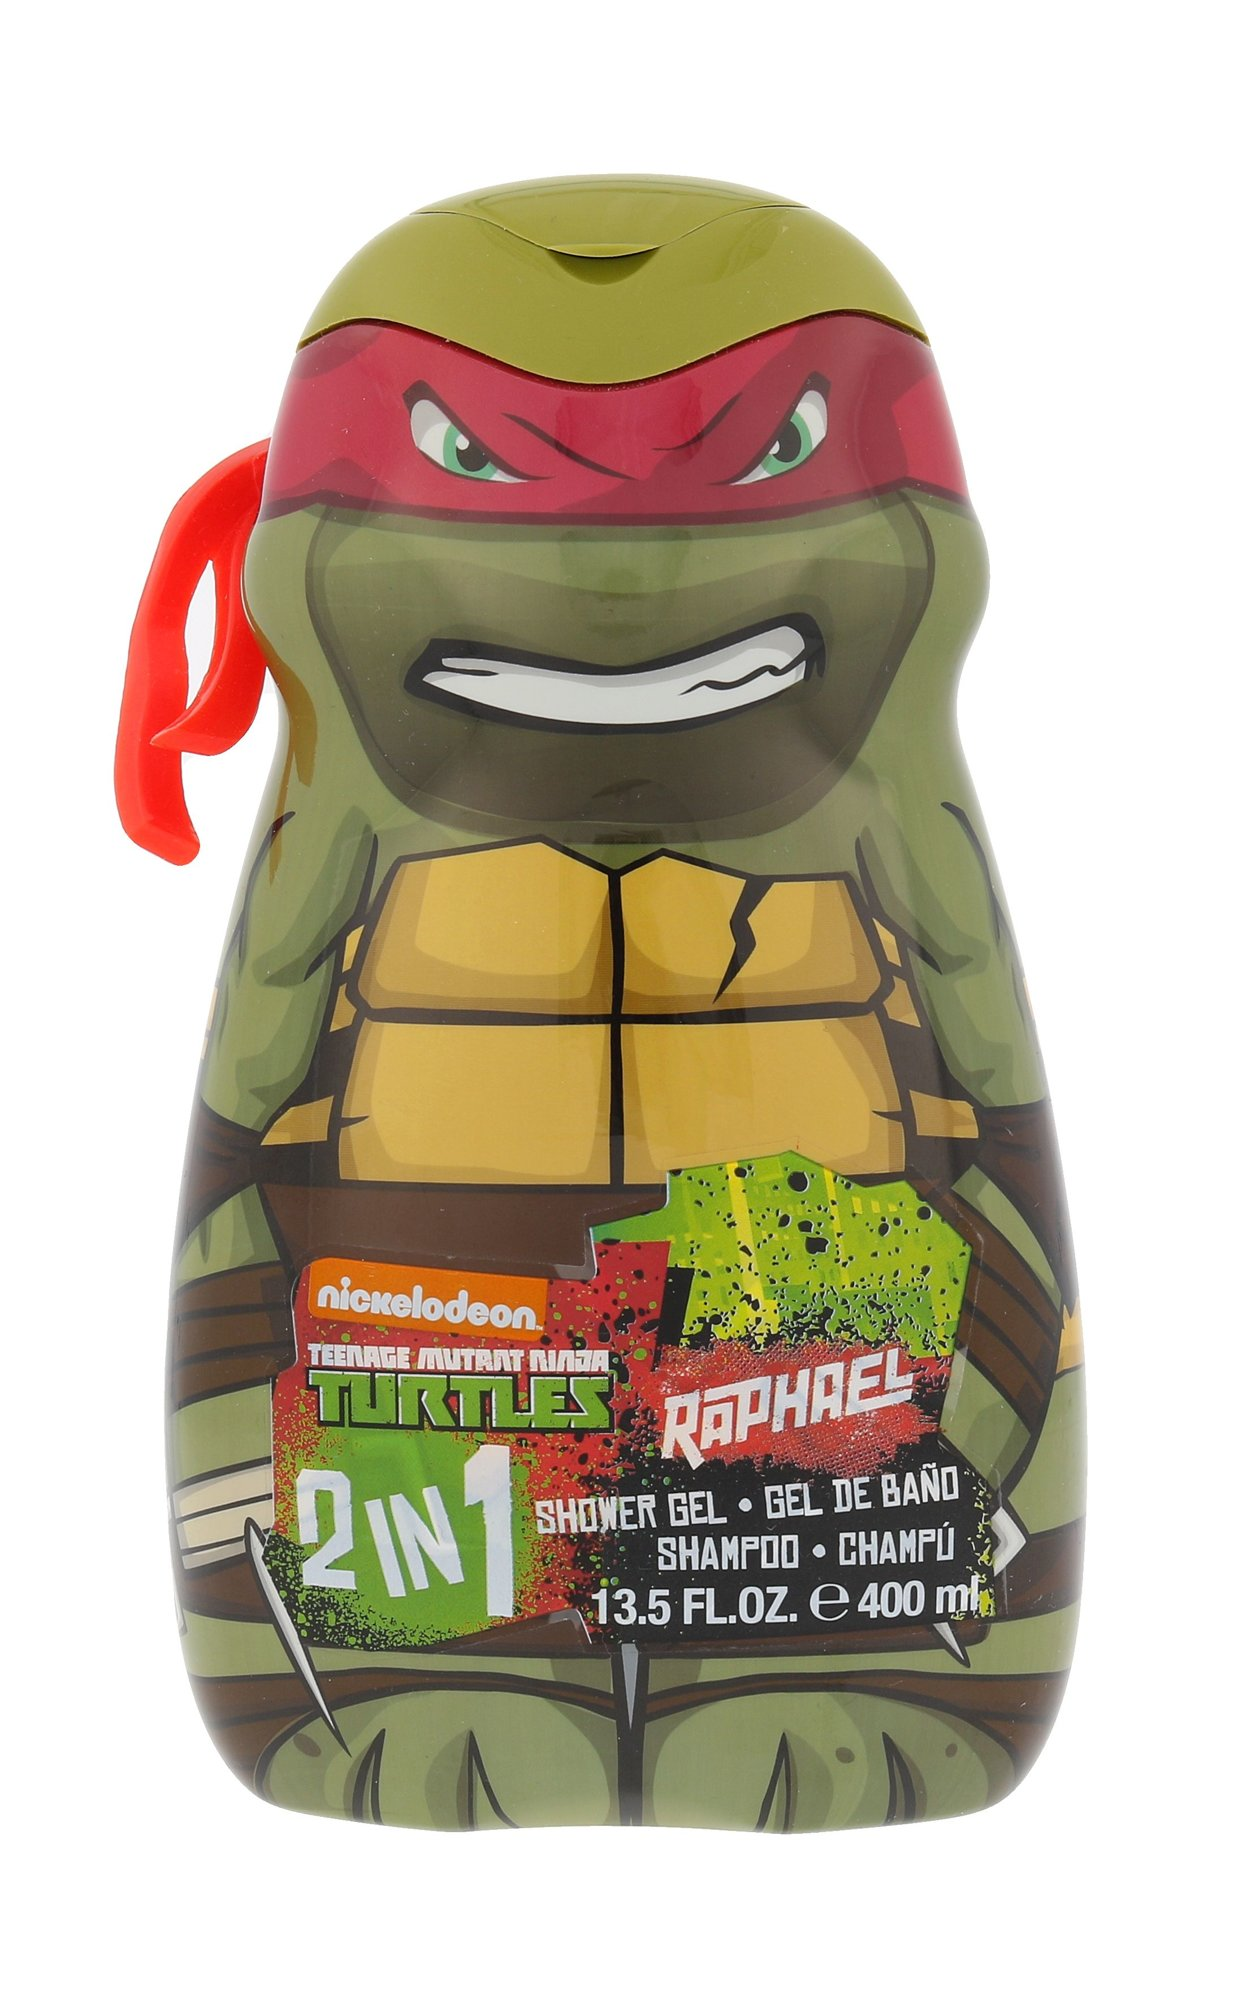 Nickelodeon Teenage Mutant Ninja Turtles Raphael Shower gel 400ml